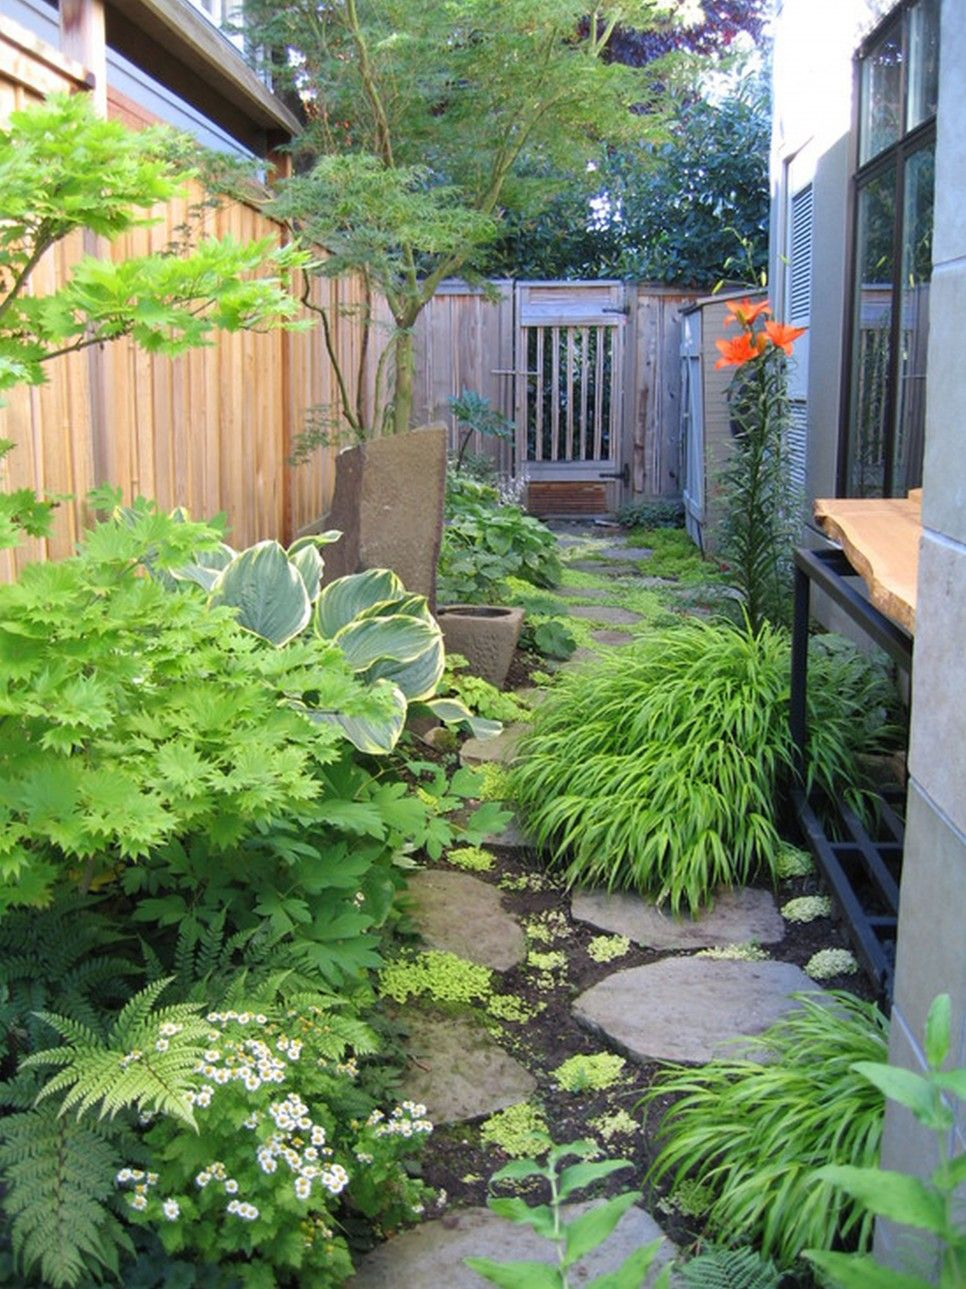 Garden And Patio Narrow Side Yard Garden House Design With Vegetable Garden Plants And Stone Side Yard Landscaping Garden Layout Small Front Yard Landscaping